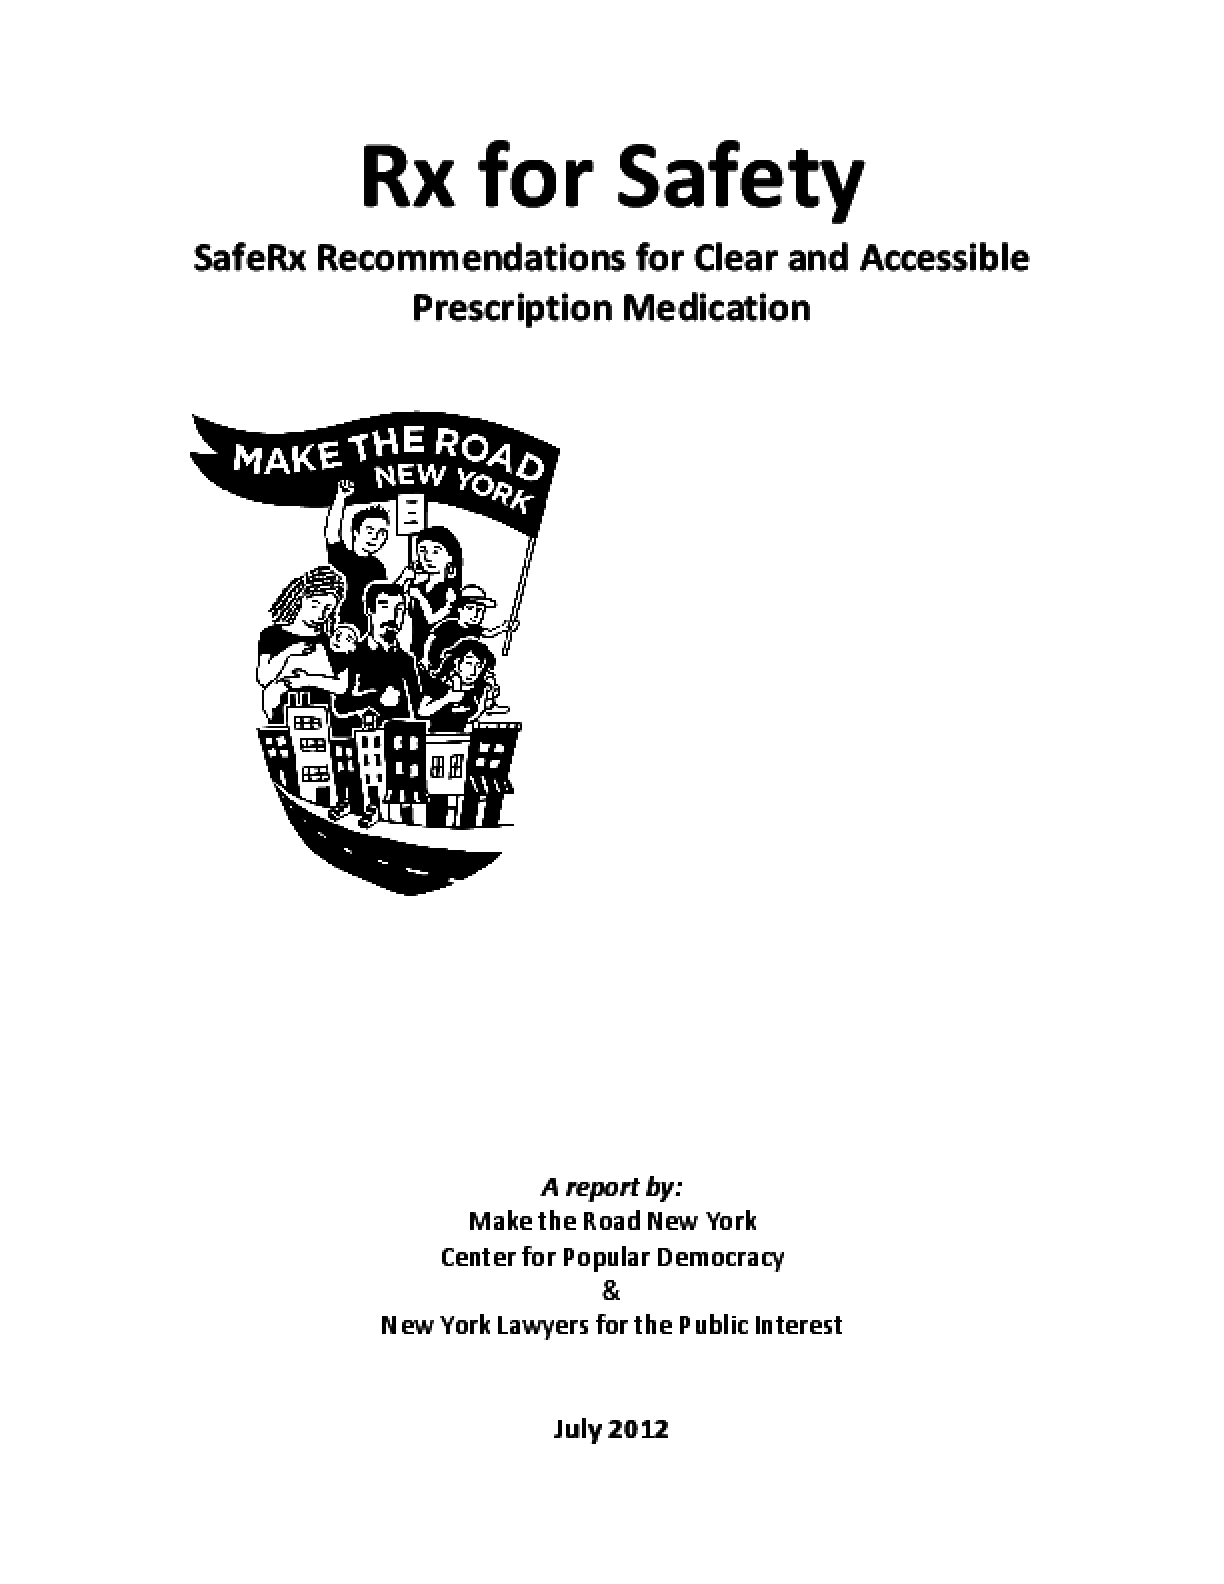 Rx for Safety: SafeRx Recommendations for Clear and